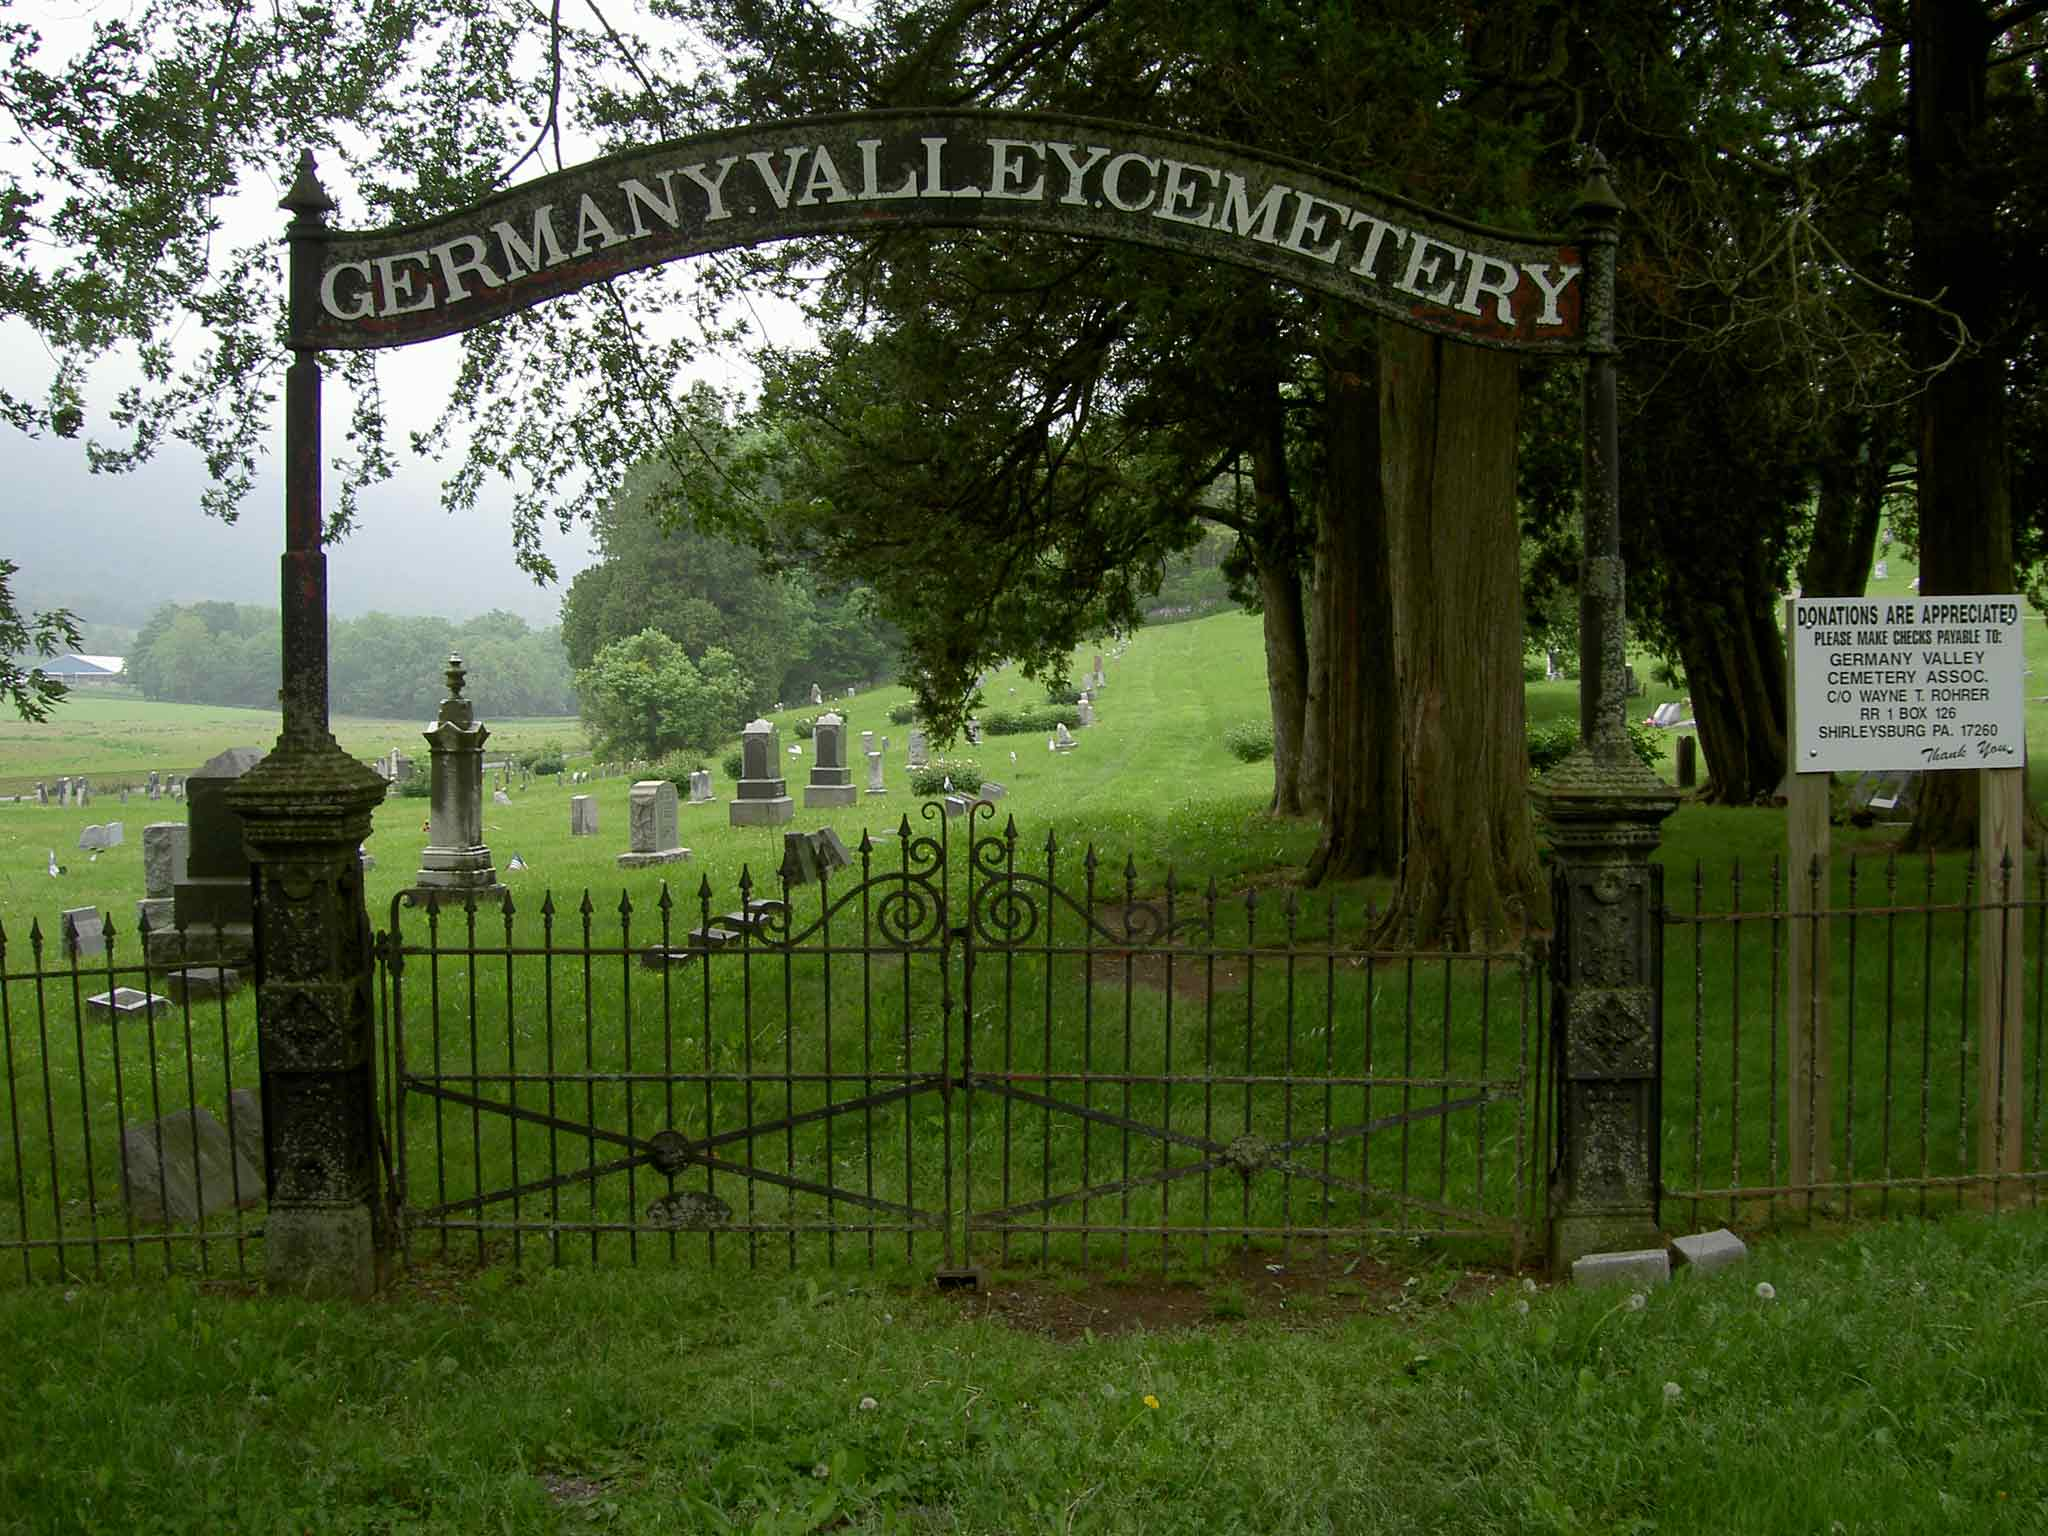 Germany Valley Cemetery